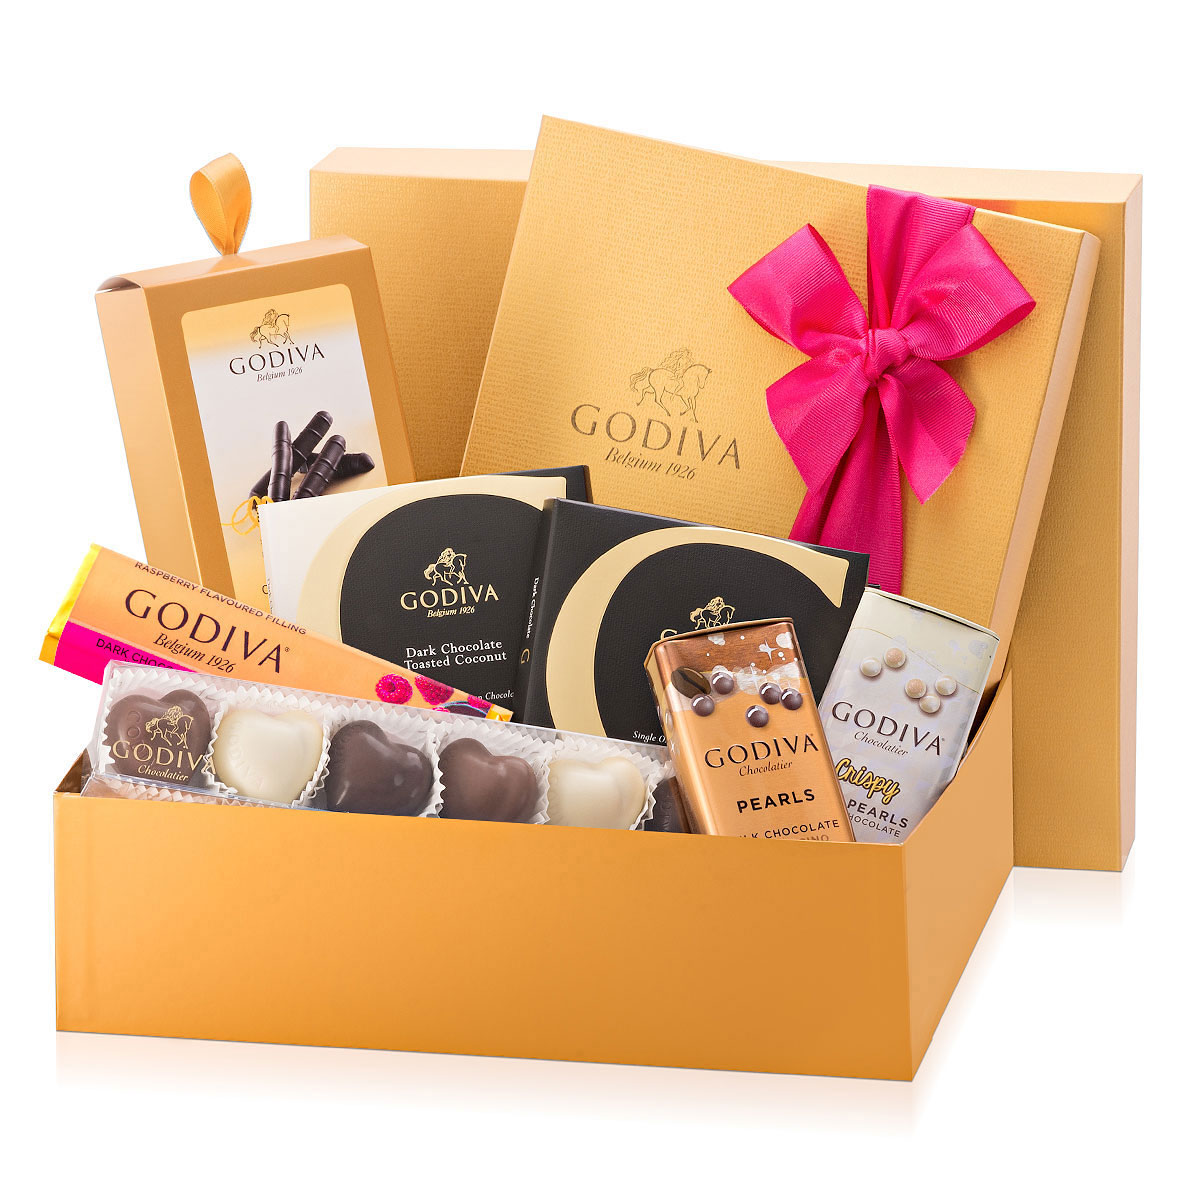 The chocolate gift box chesterfield : Godiva romantic gift box for her delivery in europe